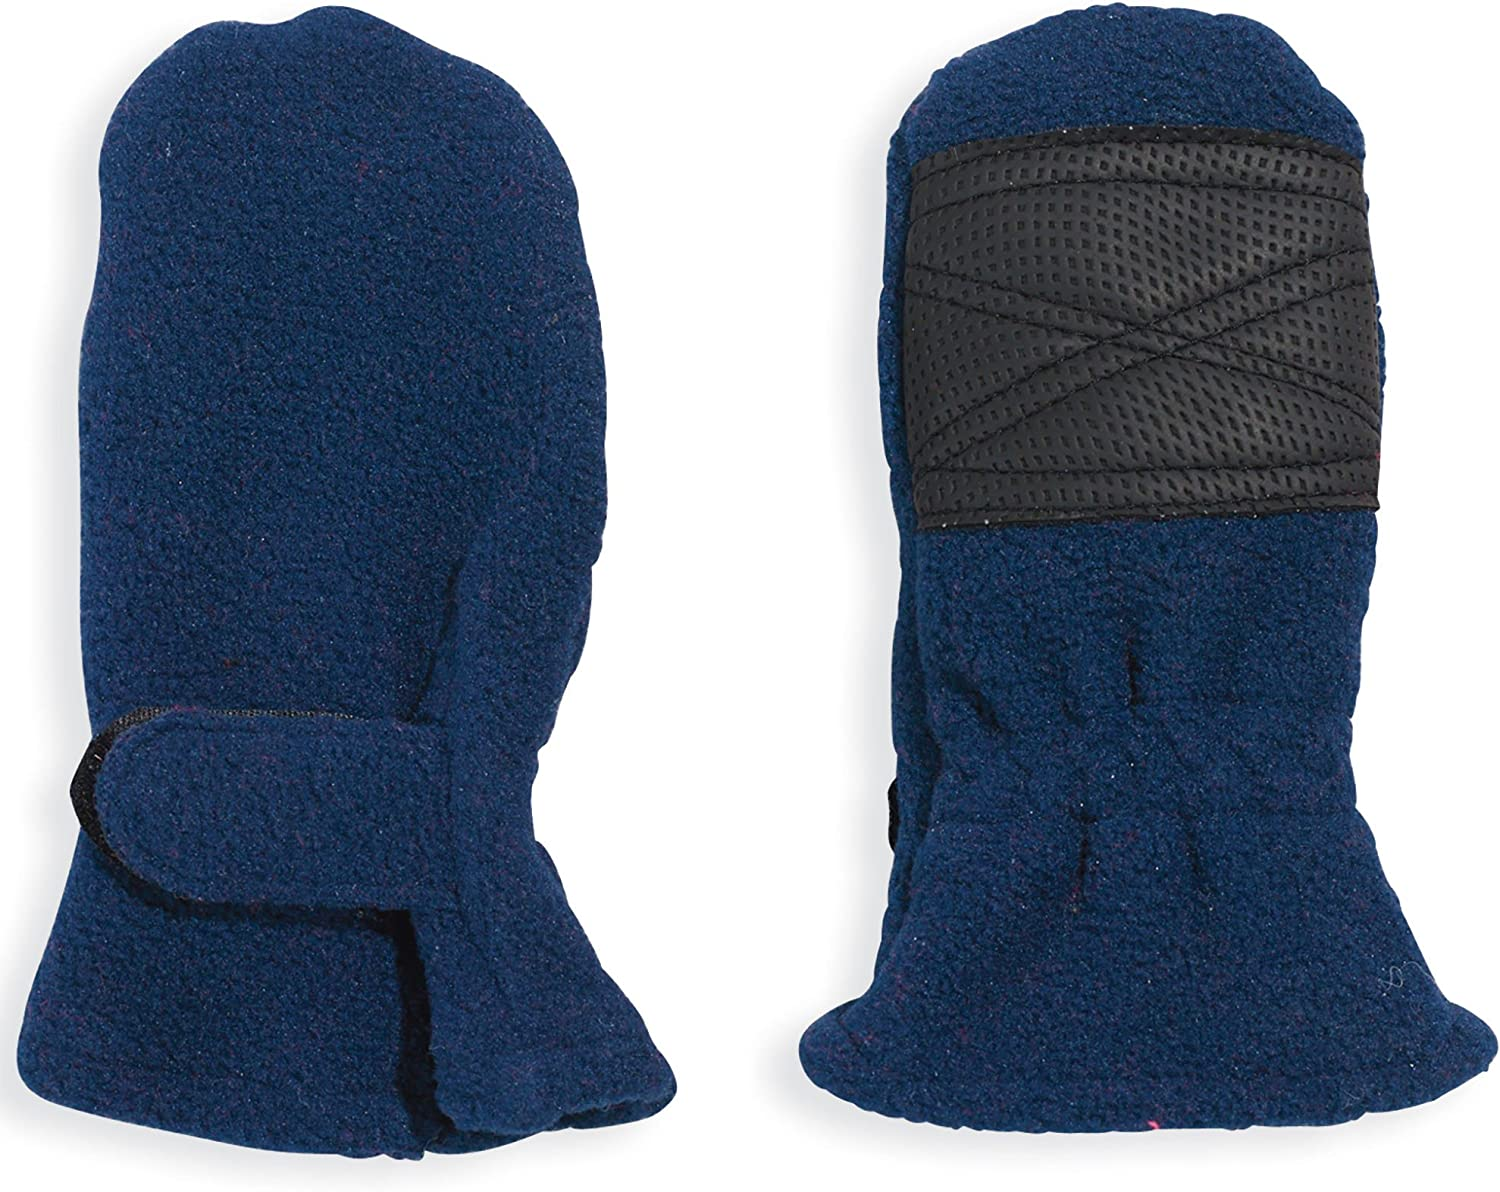 Cozy Cub Baby Thumbless Polar Fleece Mittens Ages 0-12 Months